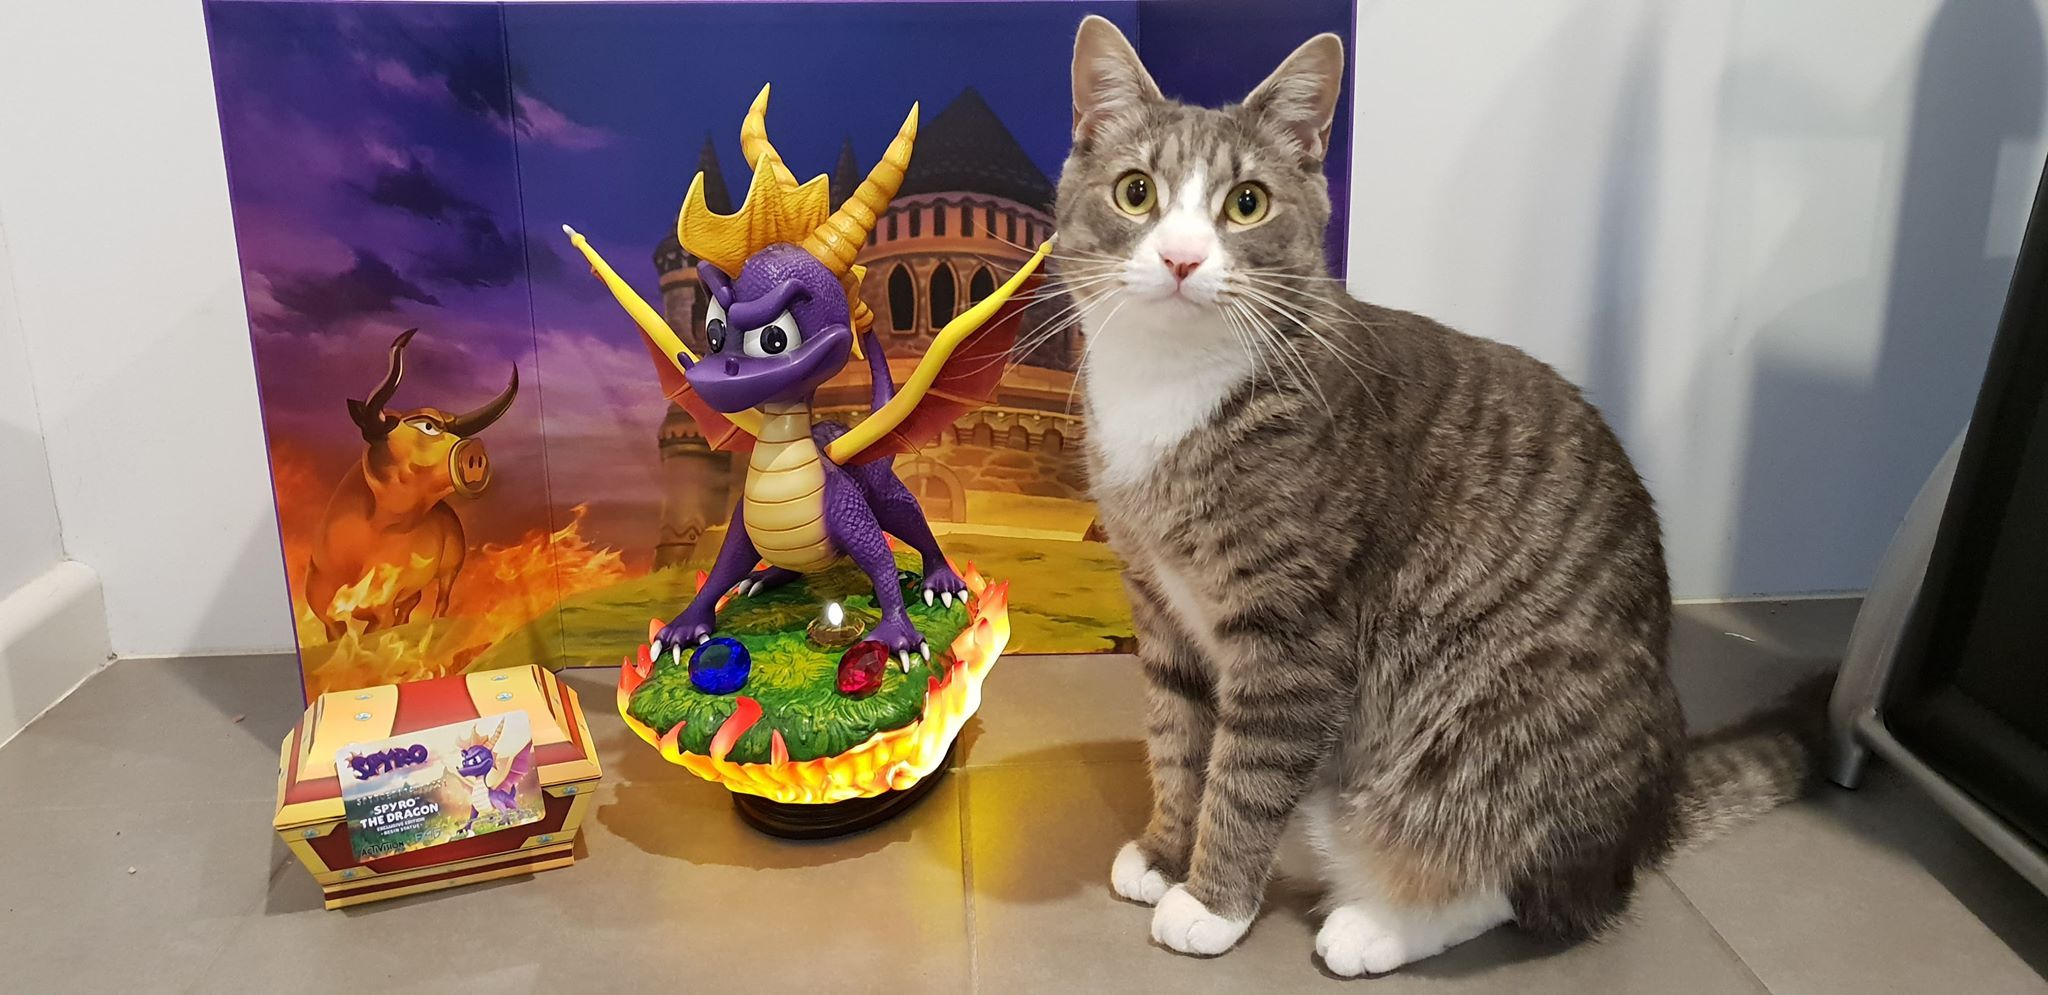 Spyro the Dragon and Drake the Cat - Photo credit: Aaron